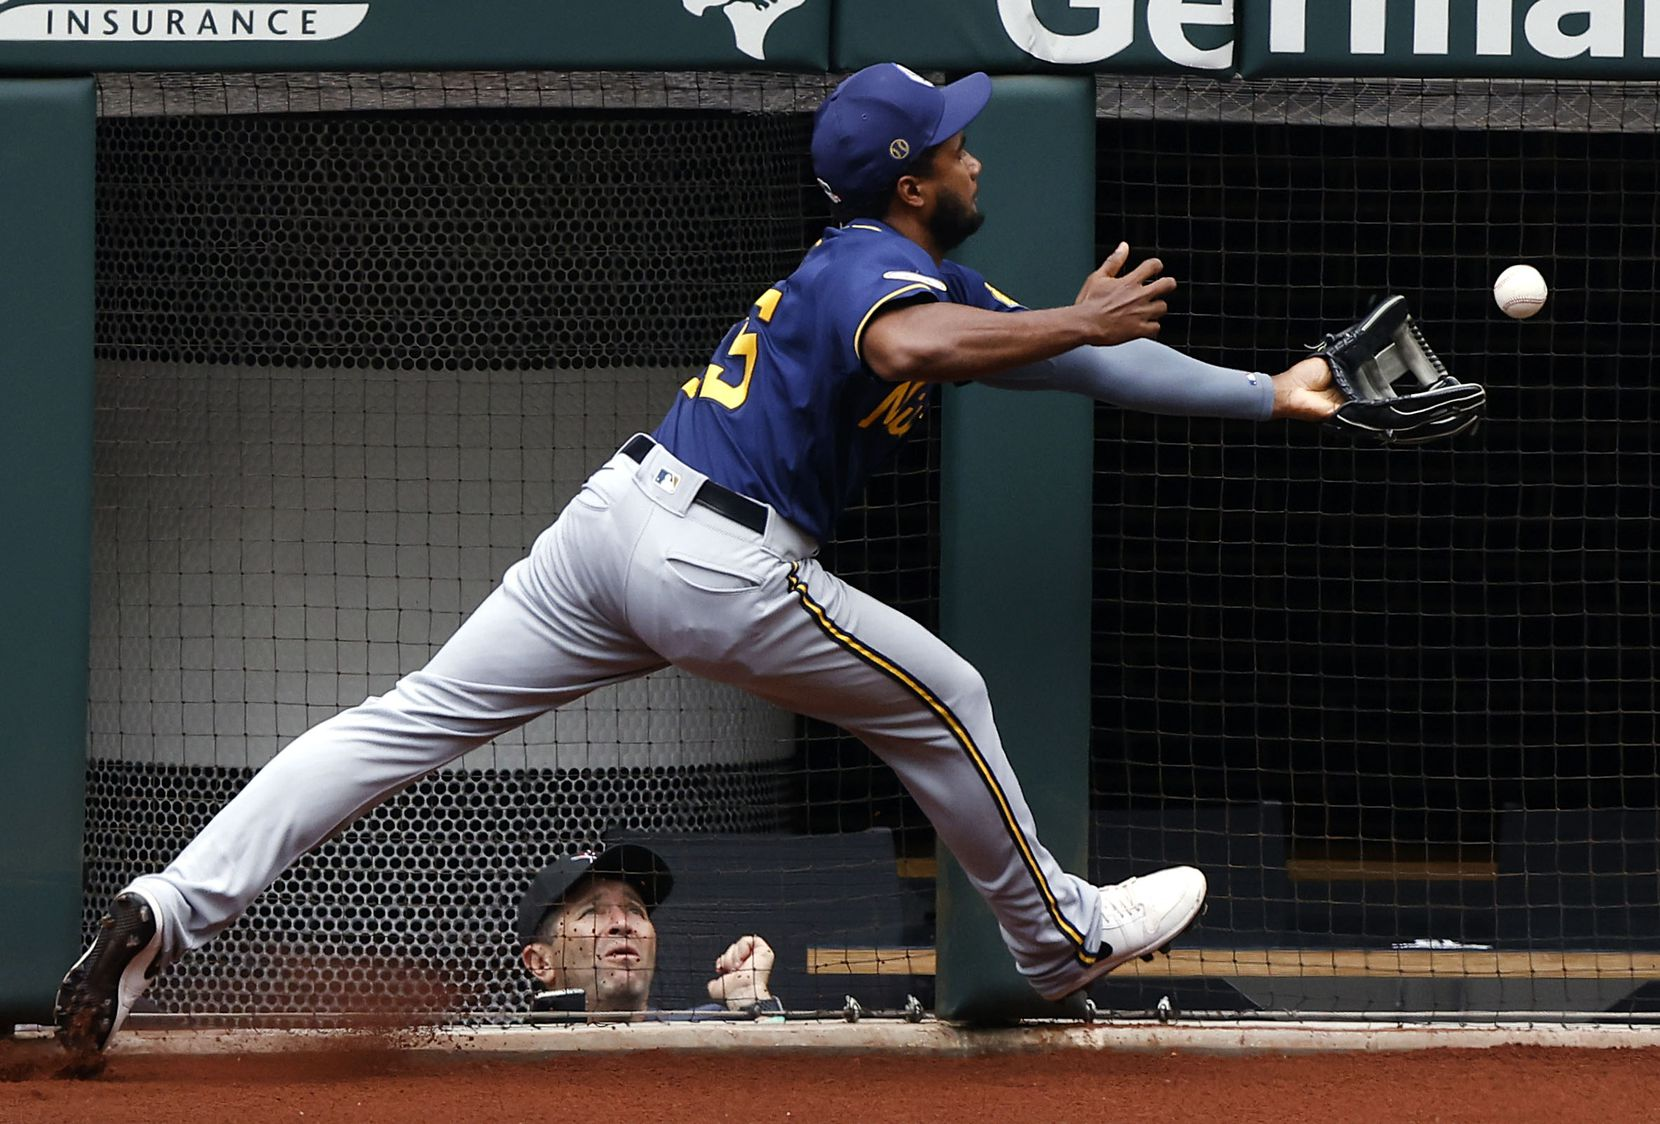 Milwaukee Brewers third baseman Pablo Reyes bobbles a Texas Rangers fly ball in the sixth inning at Globe Life Field in Arlington, Texas. The teams were playing in an exhibition game, Tuesday, March 30, 2021. (Tom Fox/The Dallas Morning News)